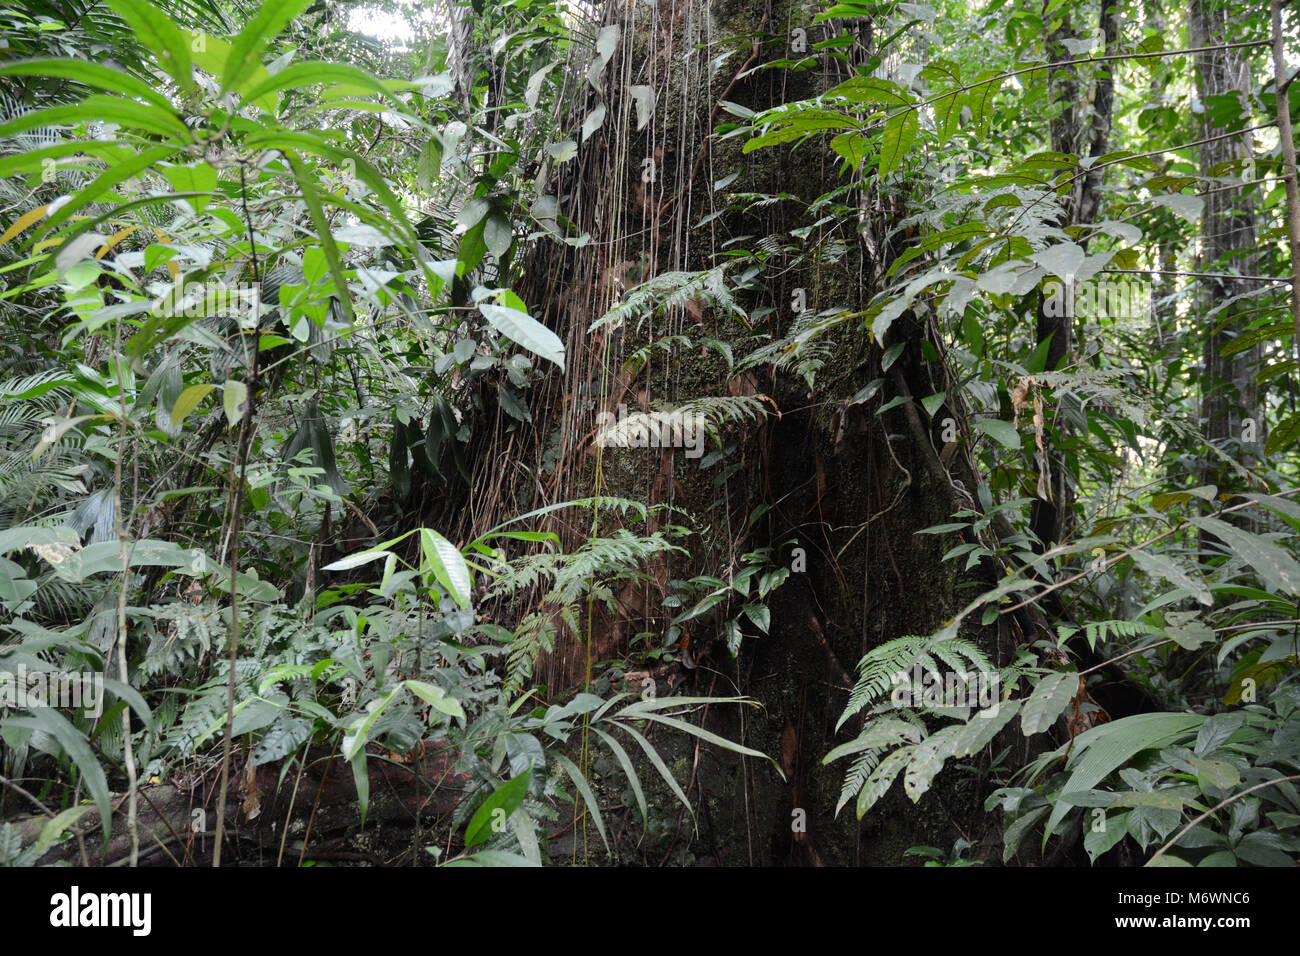 An ancient old growth tree in a tropical rainforest, Corcovado National Park, in the Osa Peninsula of Costa Rica. - Stock Image